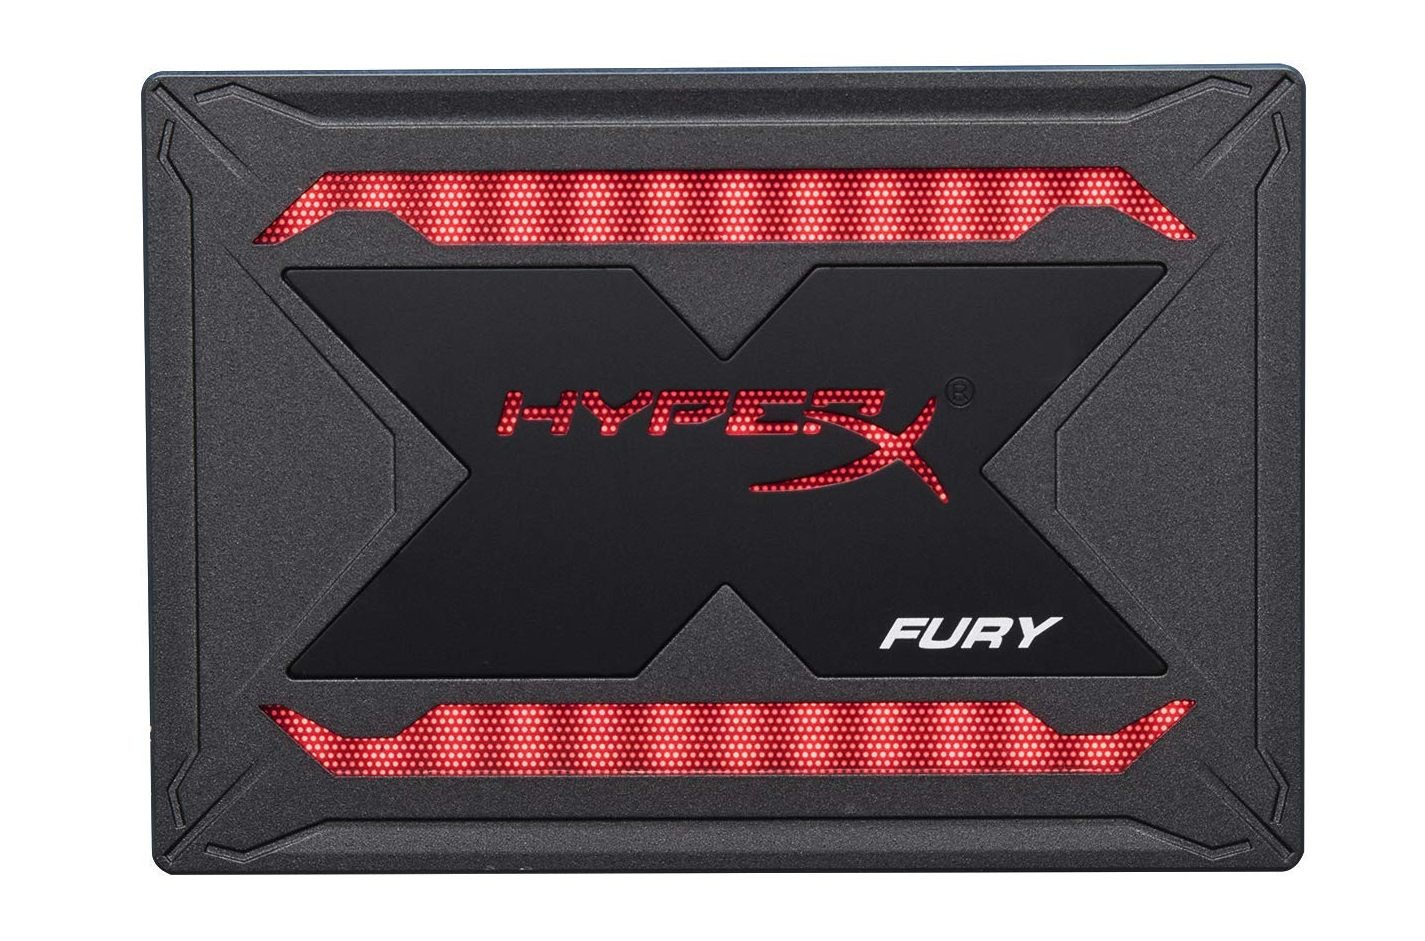 HyperX Amazon deal of the day discount